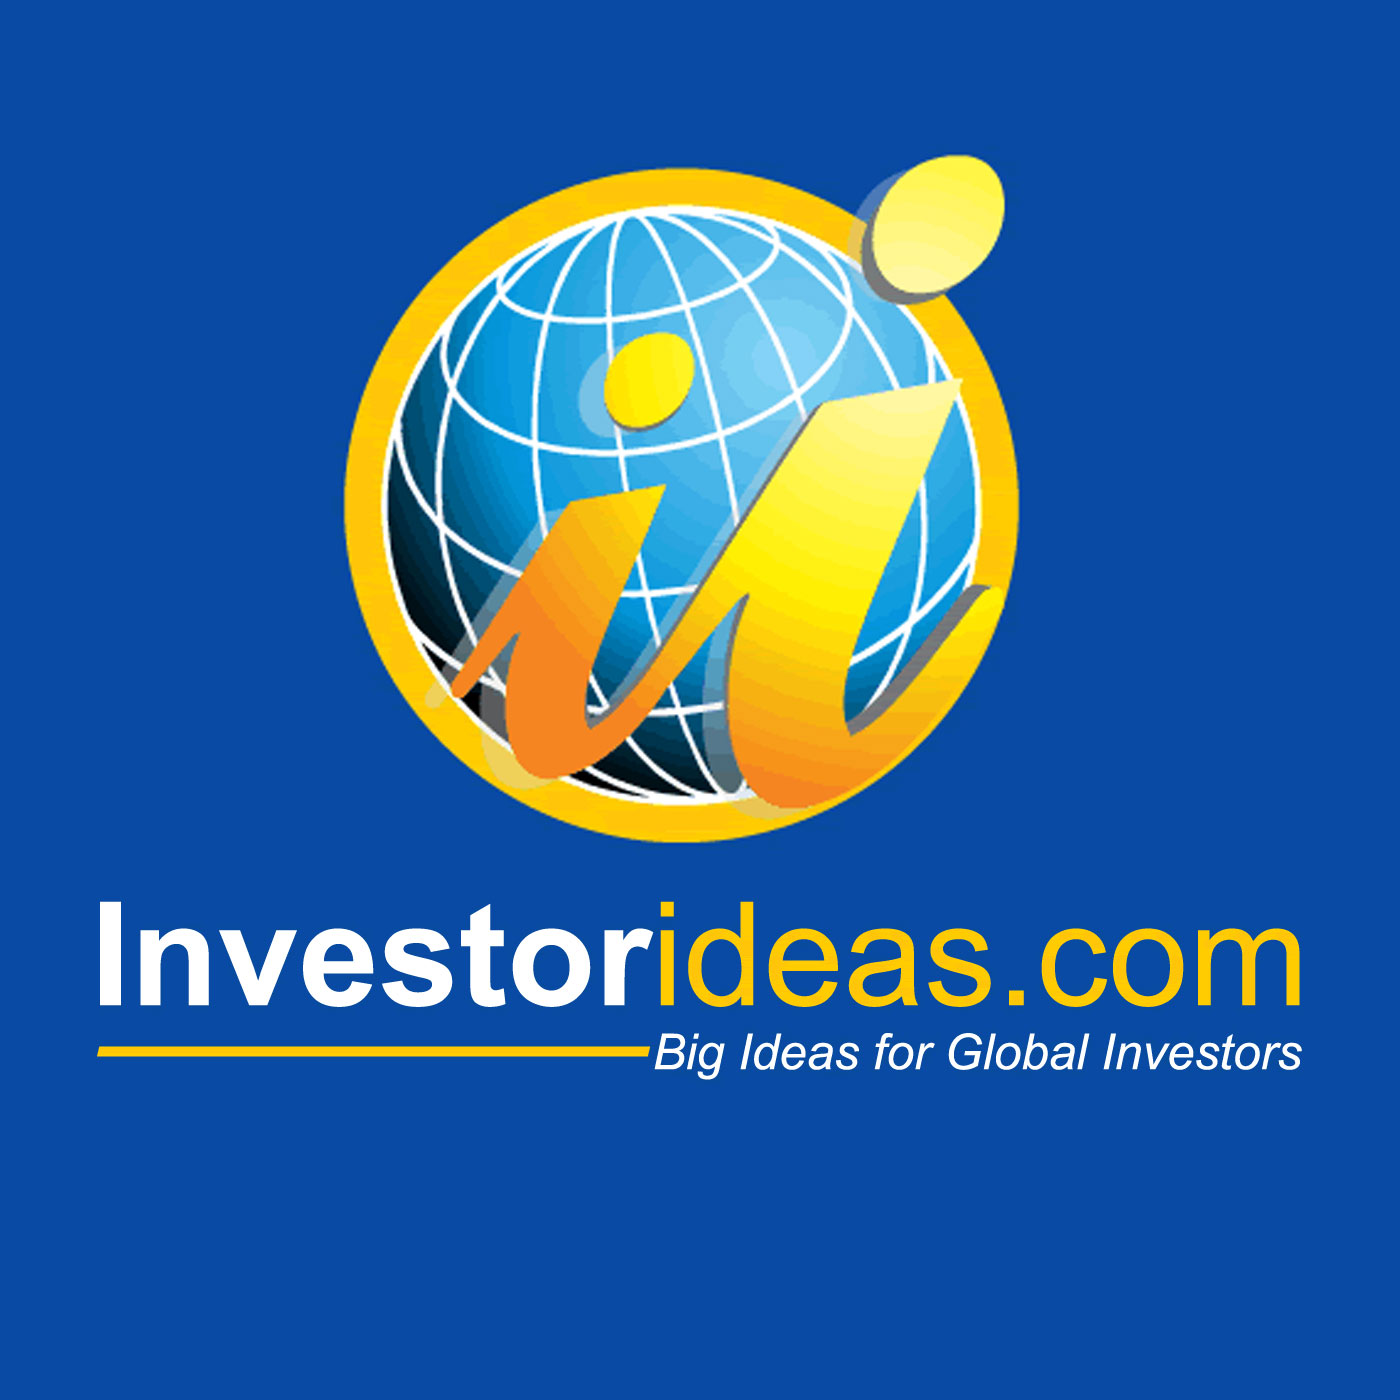 Investor Ideas Potcasts, #Cannabis News and #Stocks on the Move; (CSE: CHV) (CSE: HITI) (TSXV: PCLO) (CSE: XPHY) (CSE: MGRO)